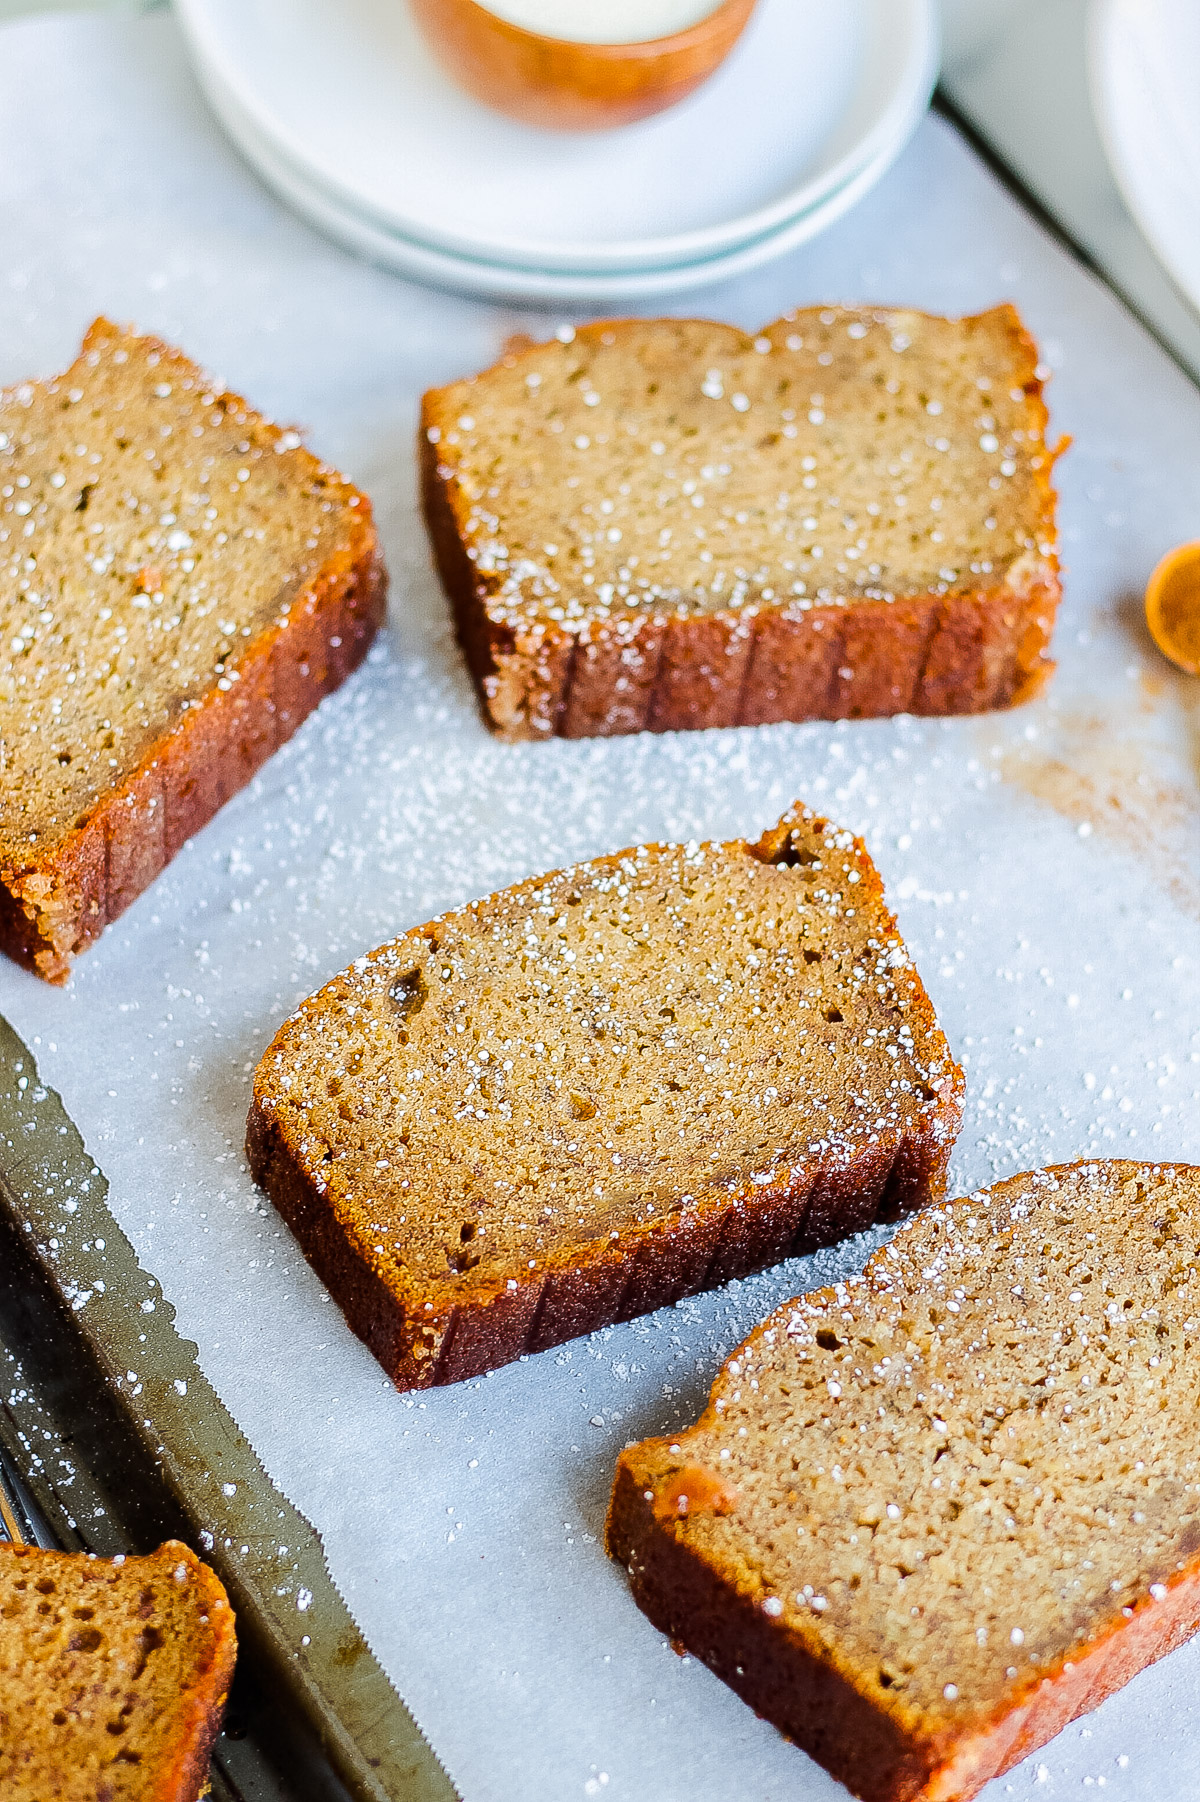 four slices of cinnamon banana bread on parchment paper